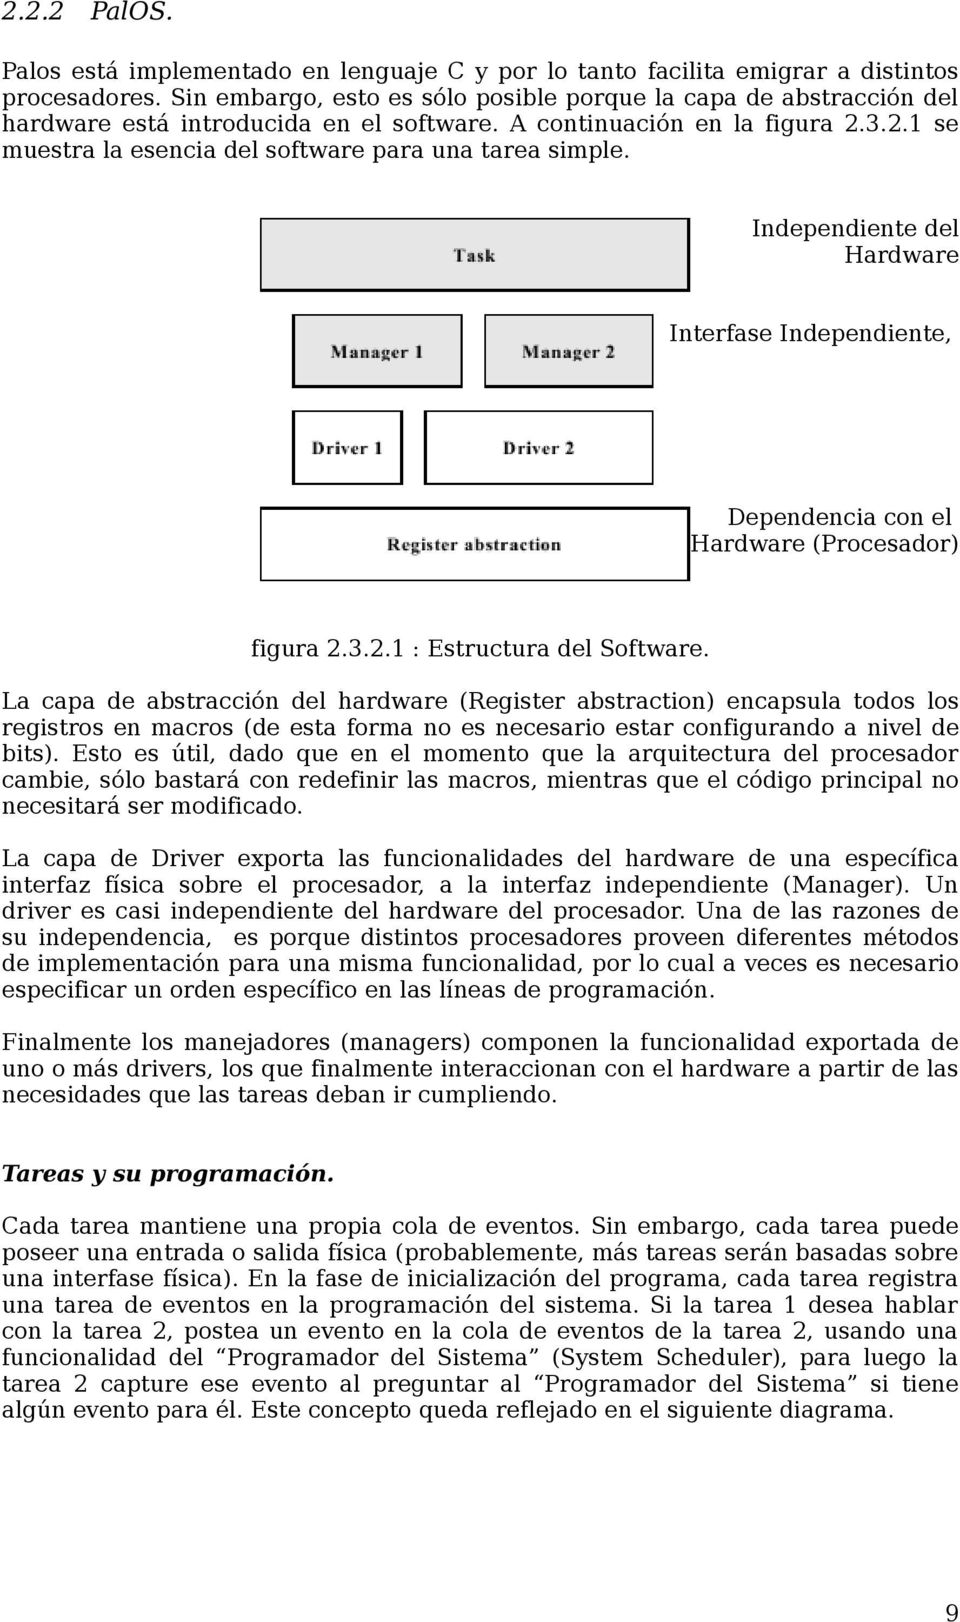 Independiente del Hardware Interfase Independiente, Dependencia con el Hardware (Procesador) figura 2.3.2.1 : Estructura del Software.